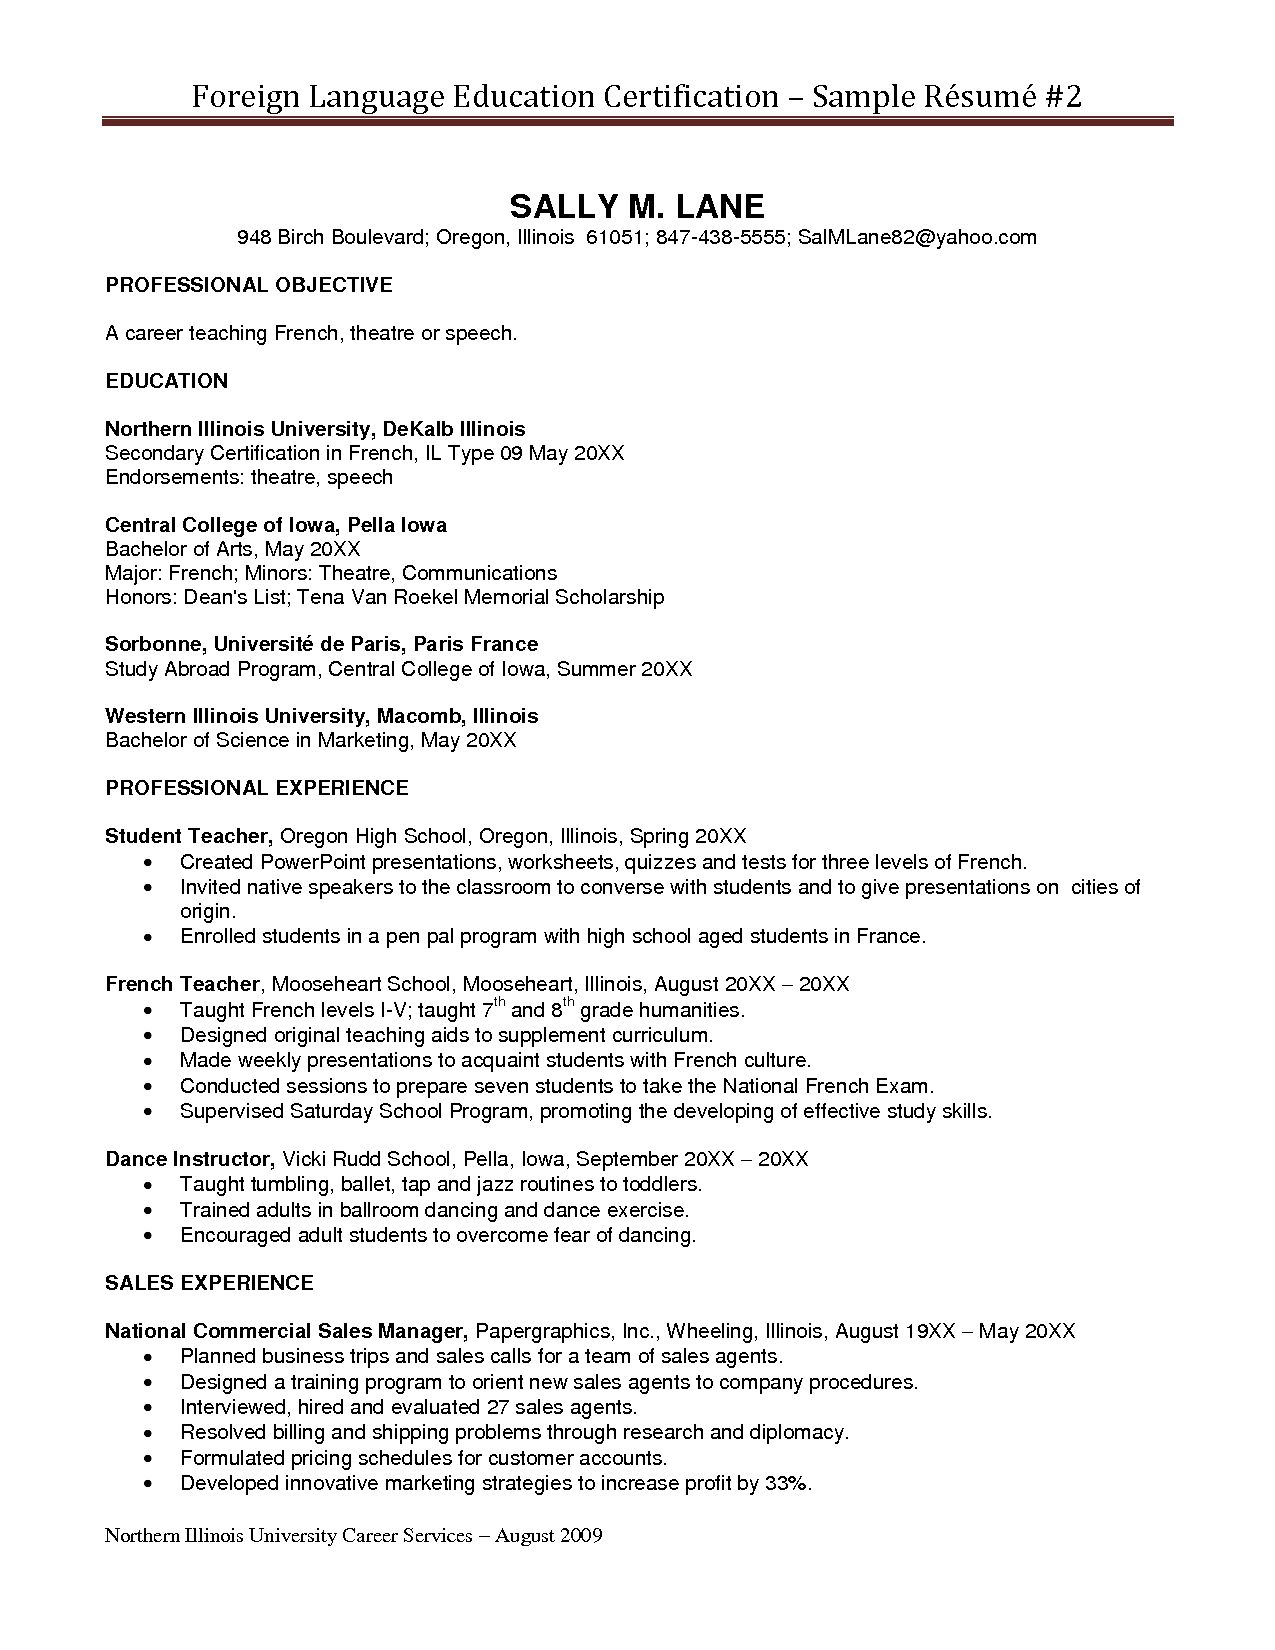 Certifications On A Resume Certification On Resume Example 0a11e7fb8  A Resume Sample